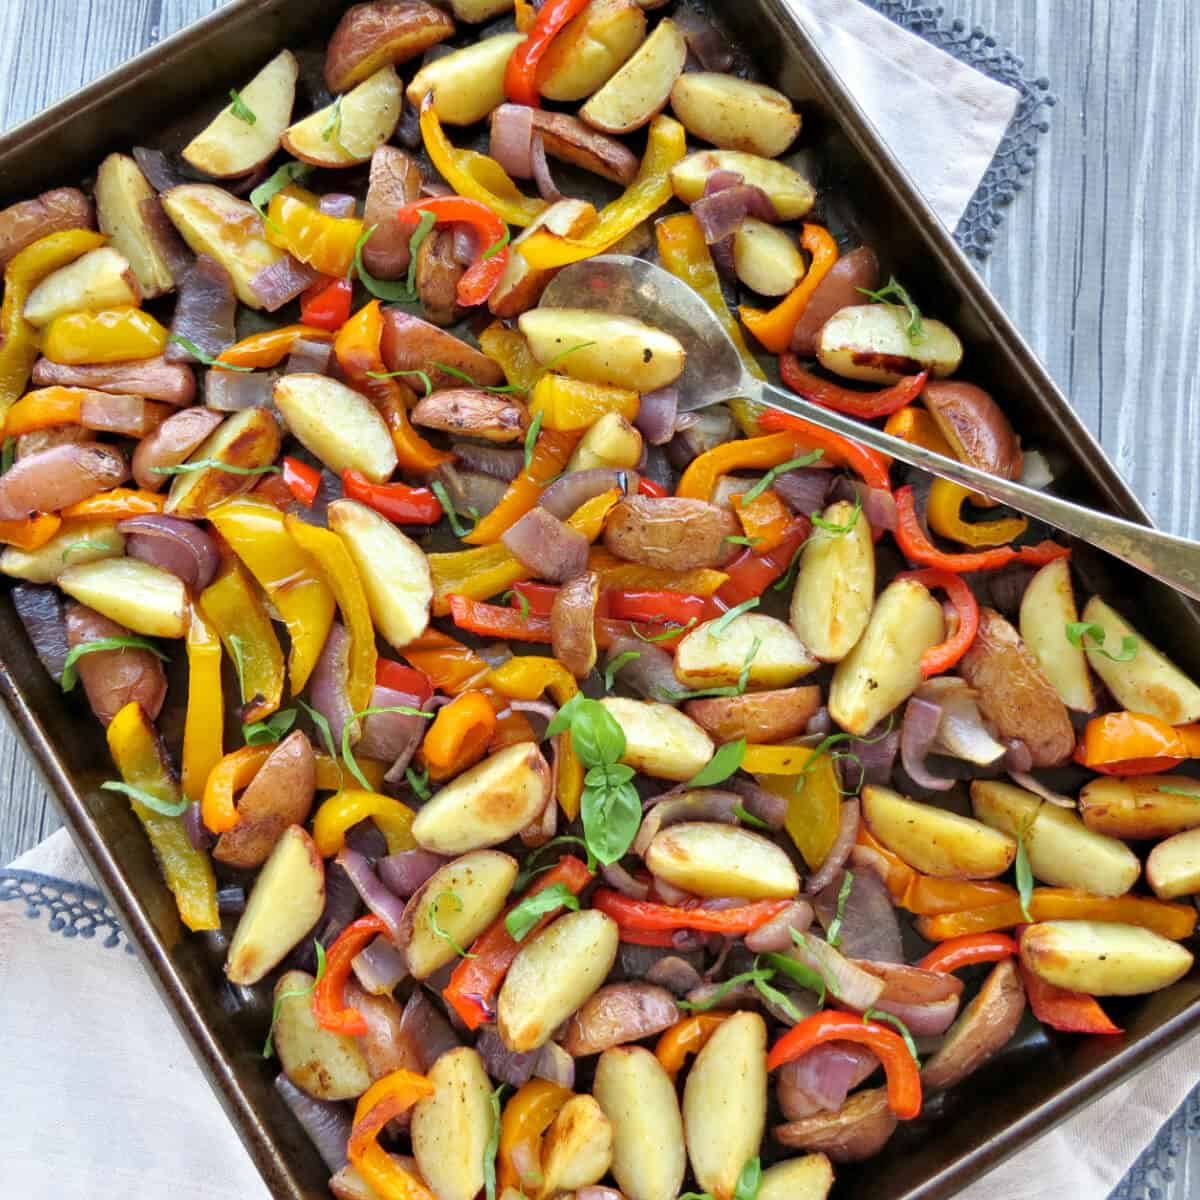 baking sheet with oven roasted potatoes, peppers and onions with fresh basil